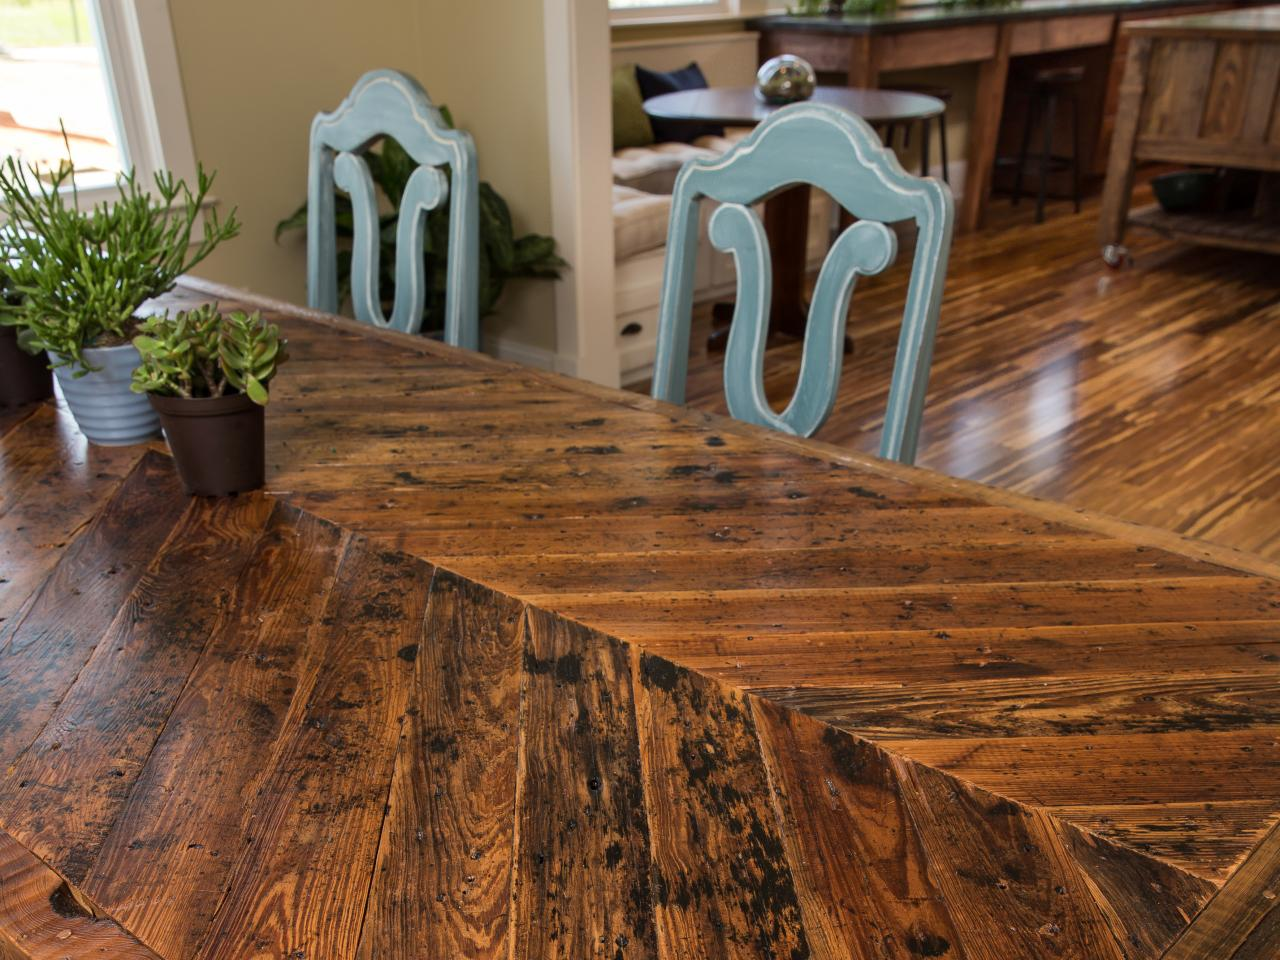 How To Build a Dining Table With Reclaimed Materials. How To Build a Dining Table With Reclaimed Materials   how tos   DIY